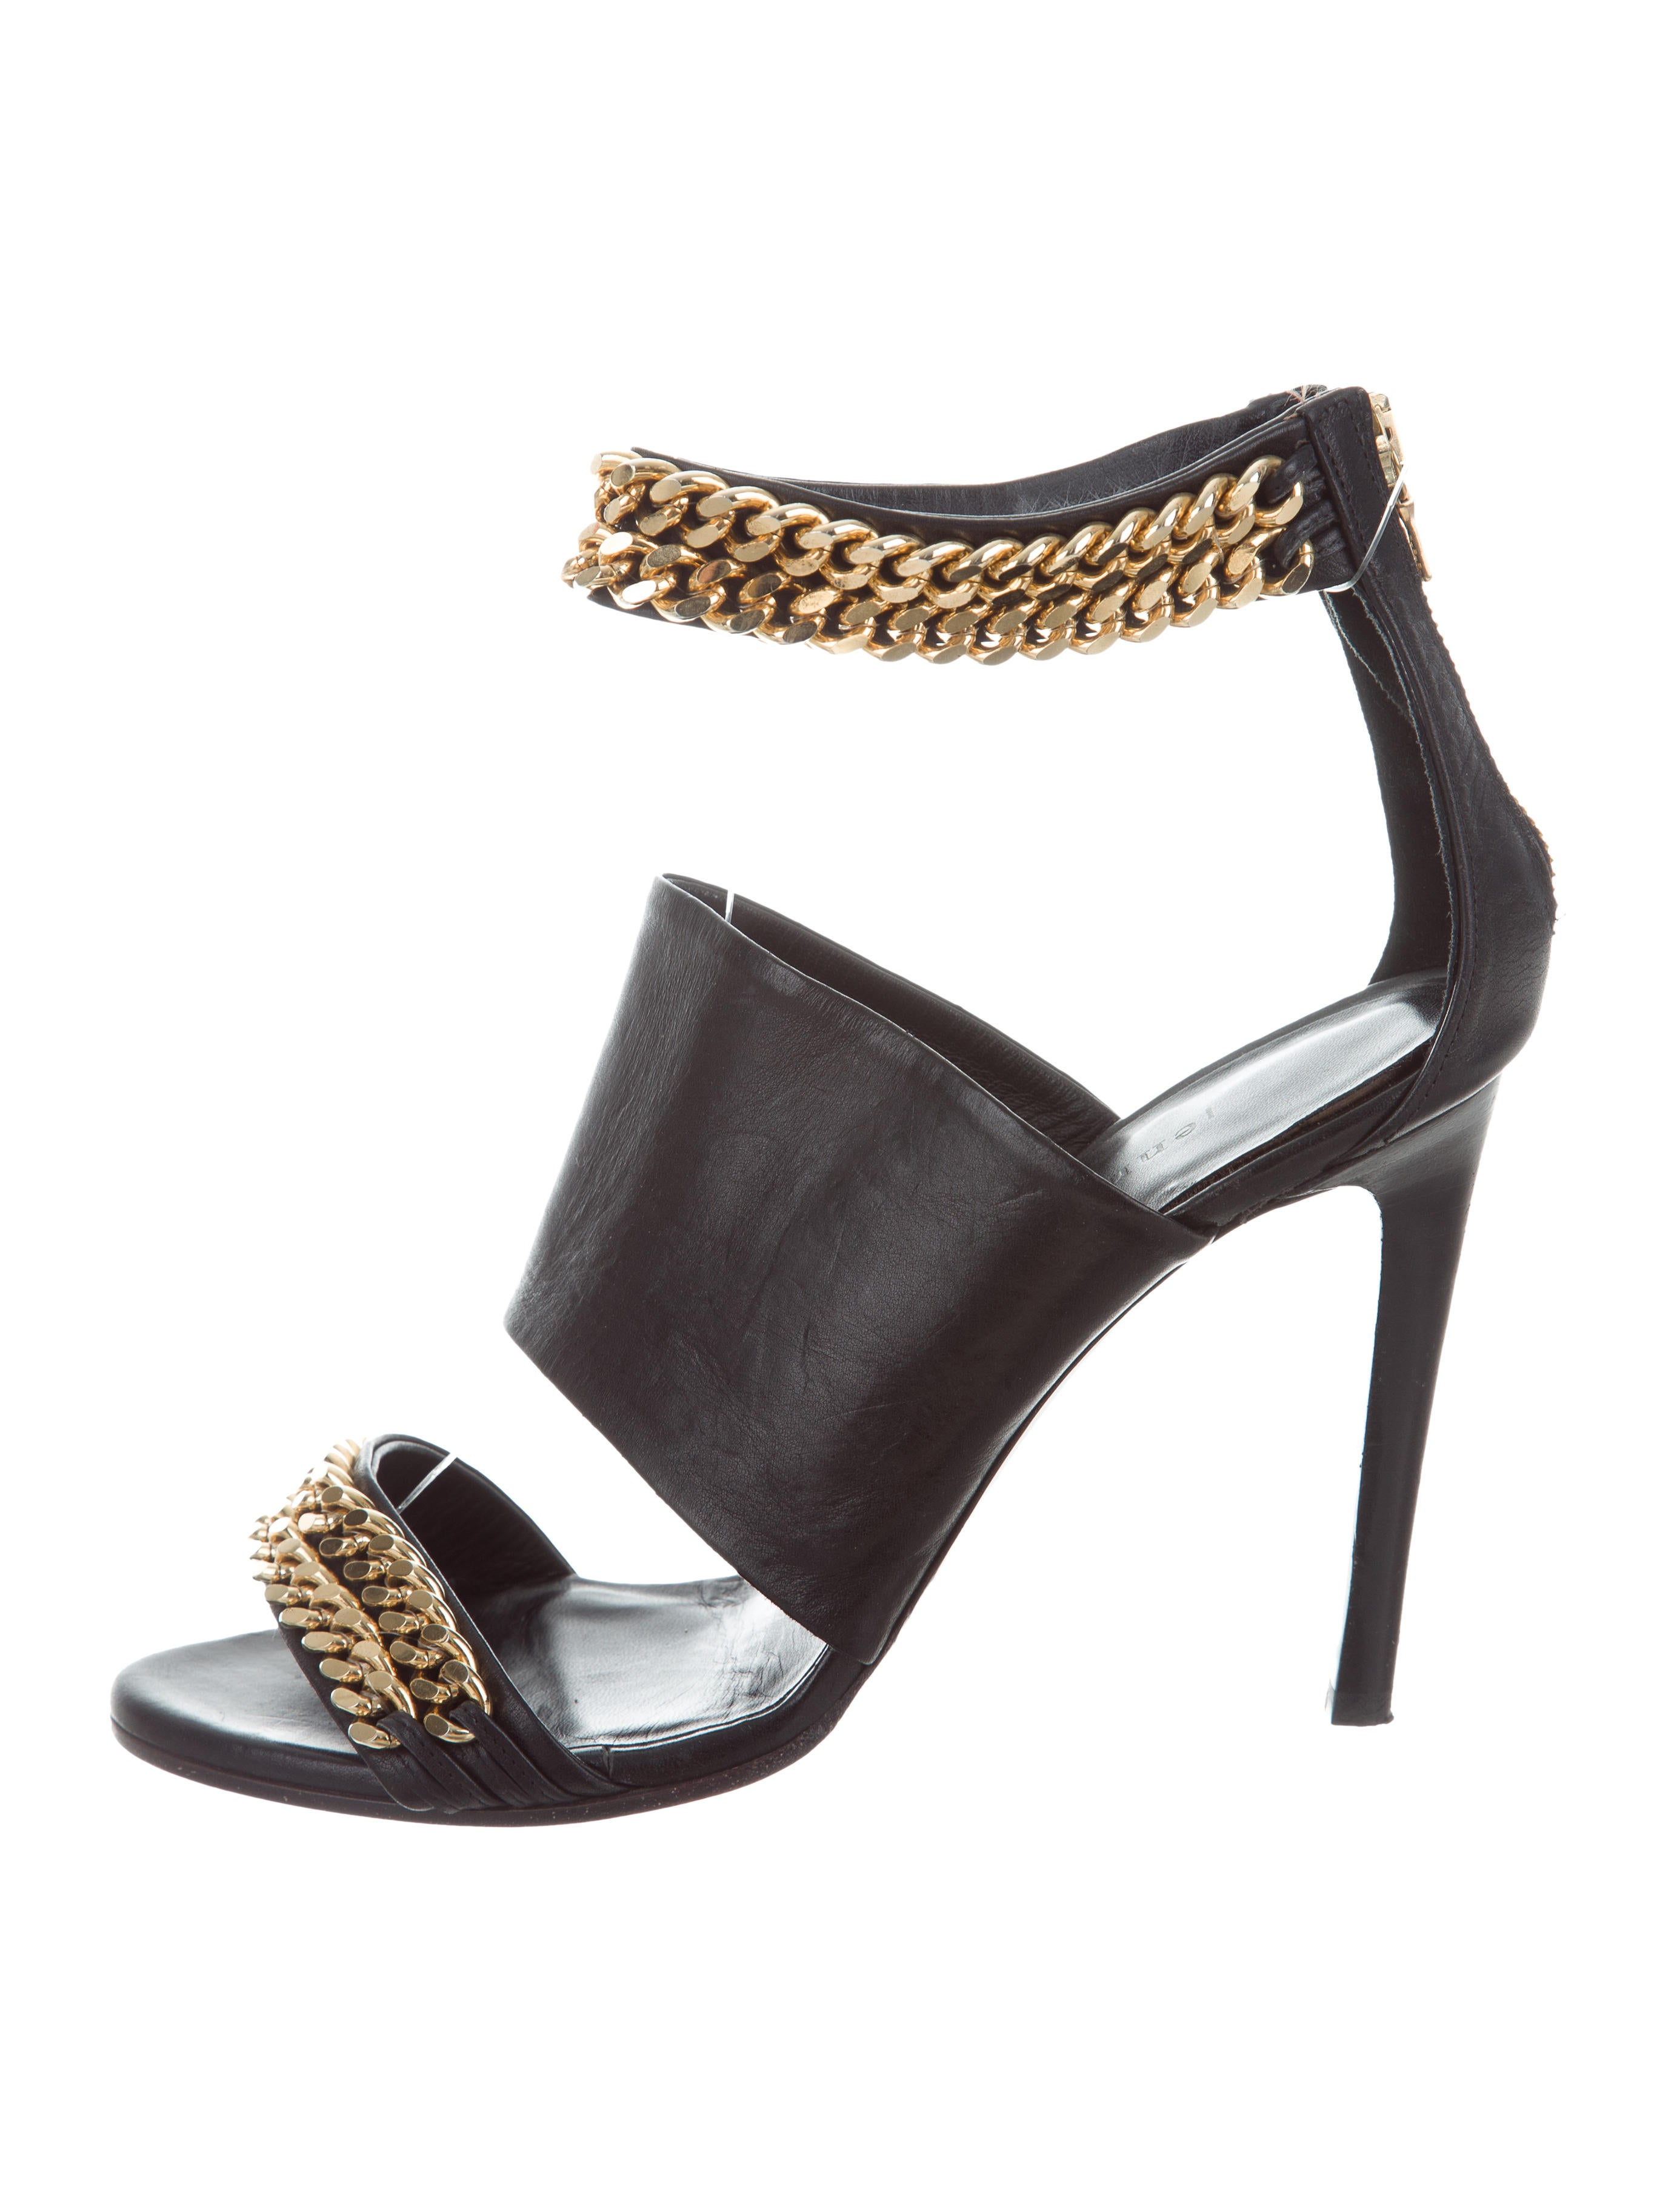 cheap sale store low shipping for sale Jenni Kayne Chain-Link Leather Sandals cheap Manchester best wholesale online 1AcSVVD